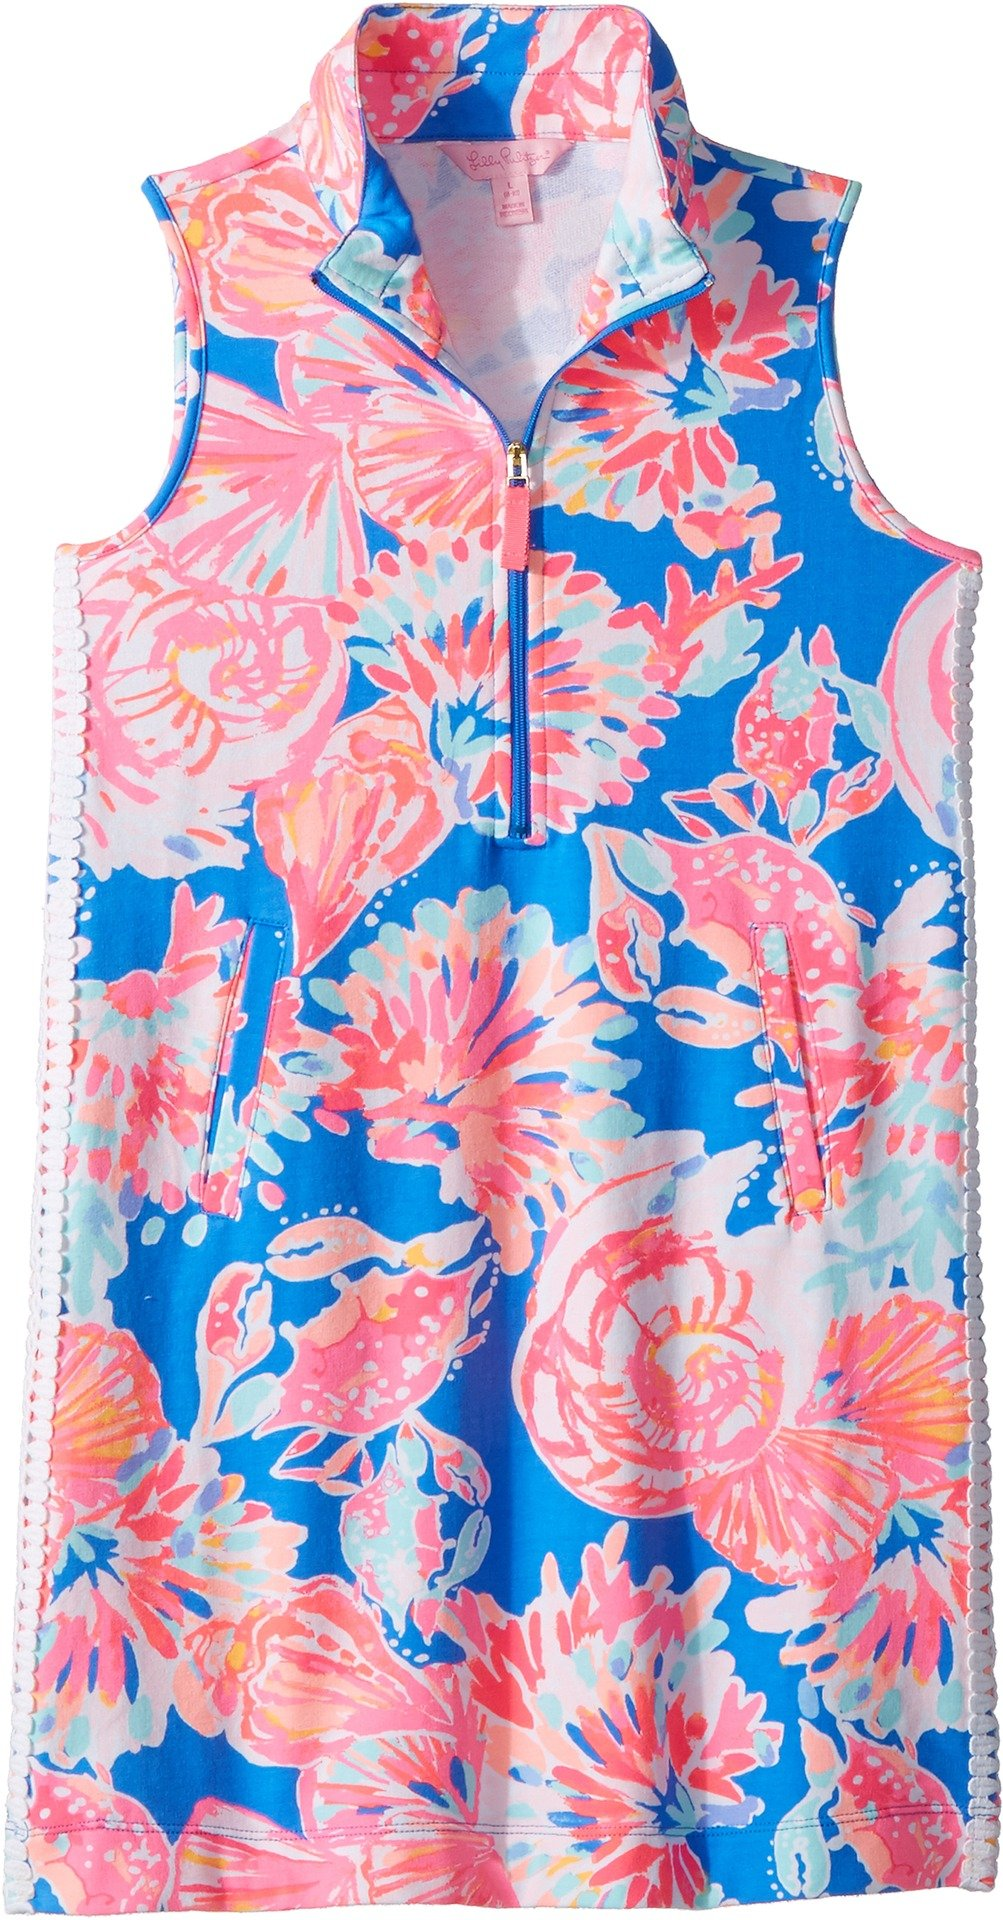 Best Deals Lilly Pulitzer Shift Dress Size 10 Super fers